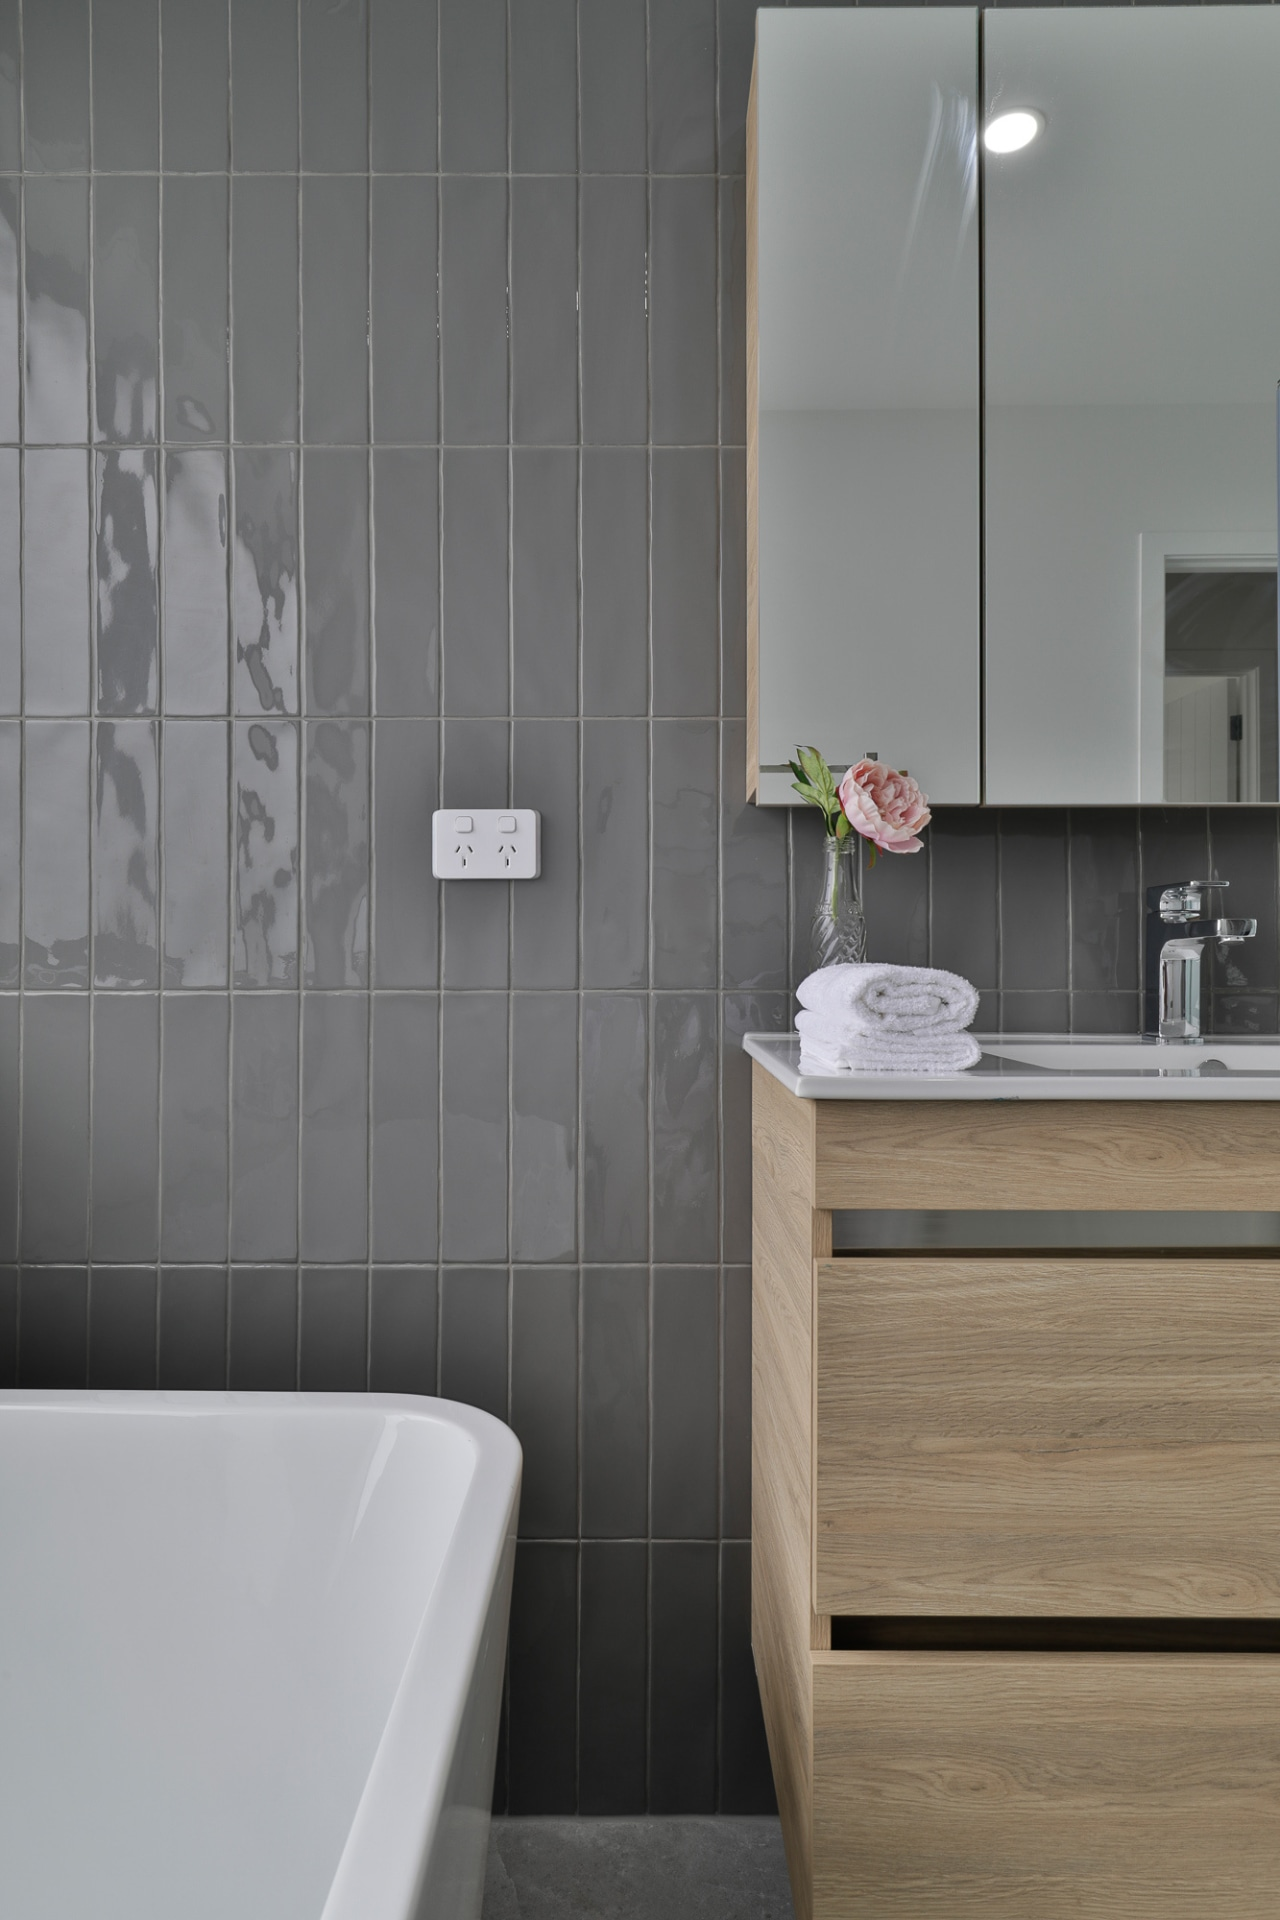 Vertical wall tiles lead the eye up the